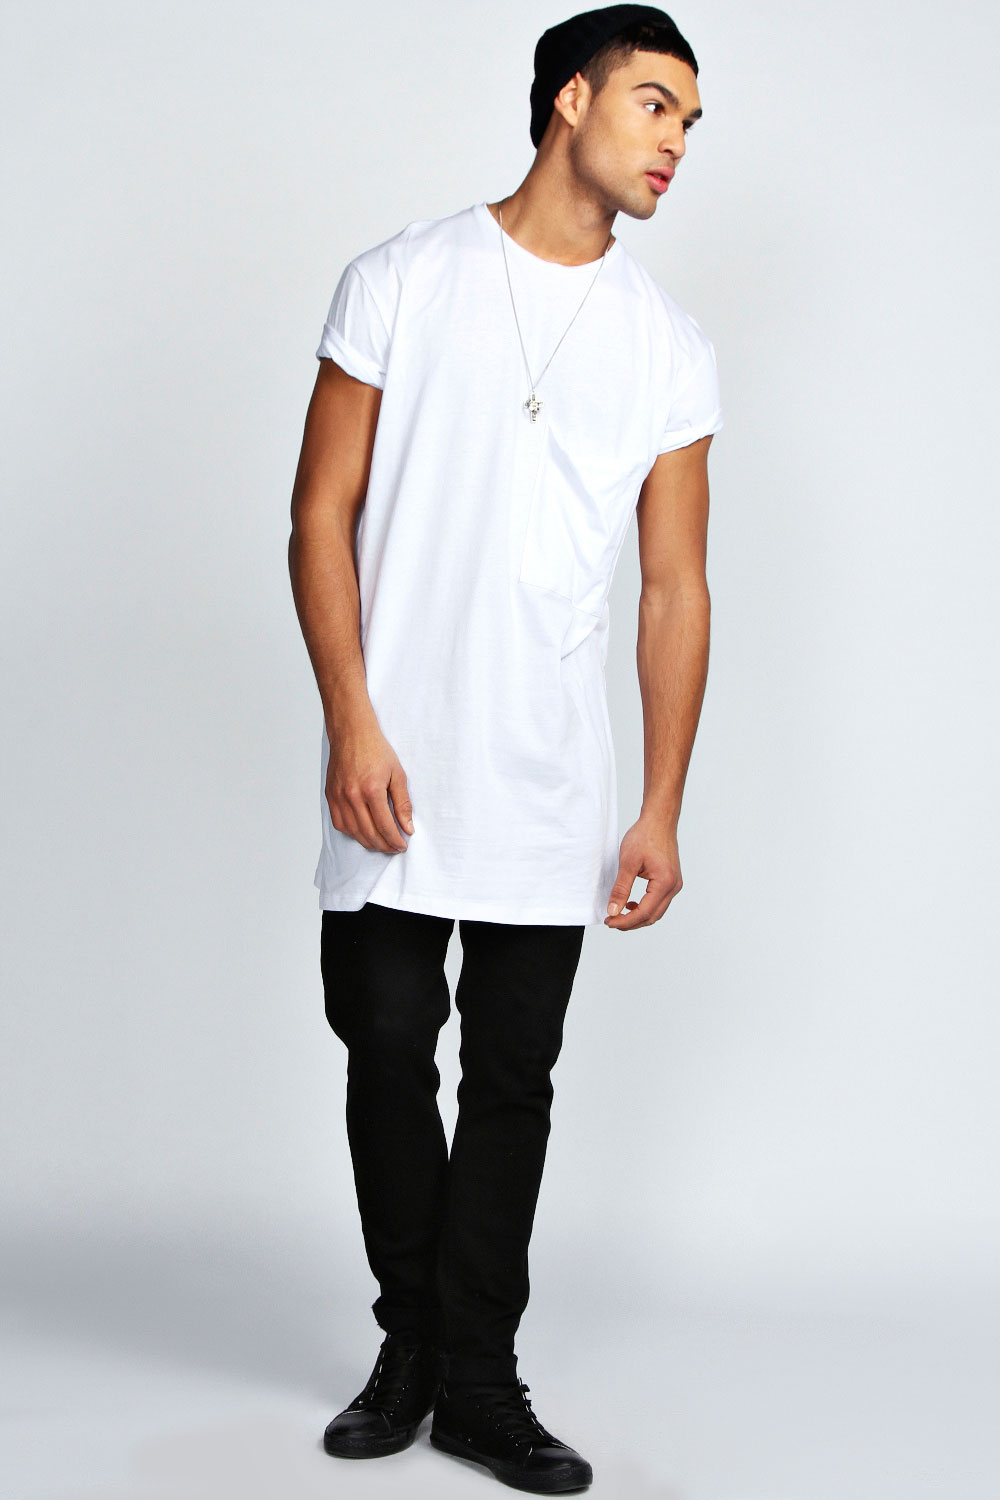 Boohoo Mens Oversized Pocket Long Line 100 % Cotton Tee Top T Shirt